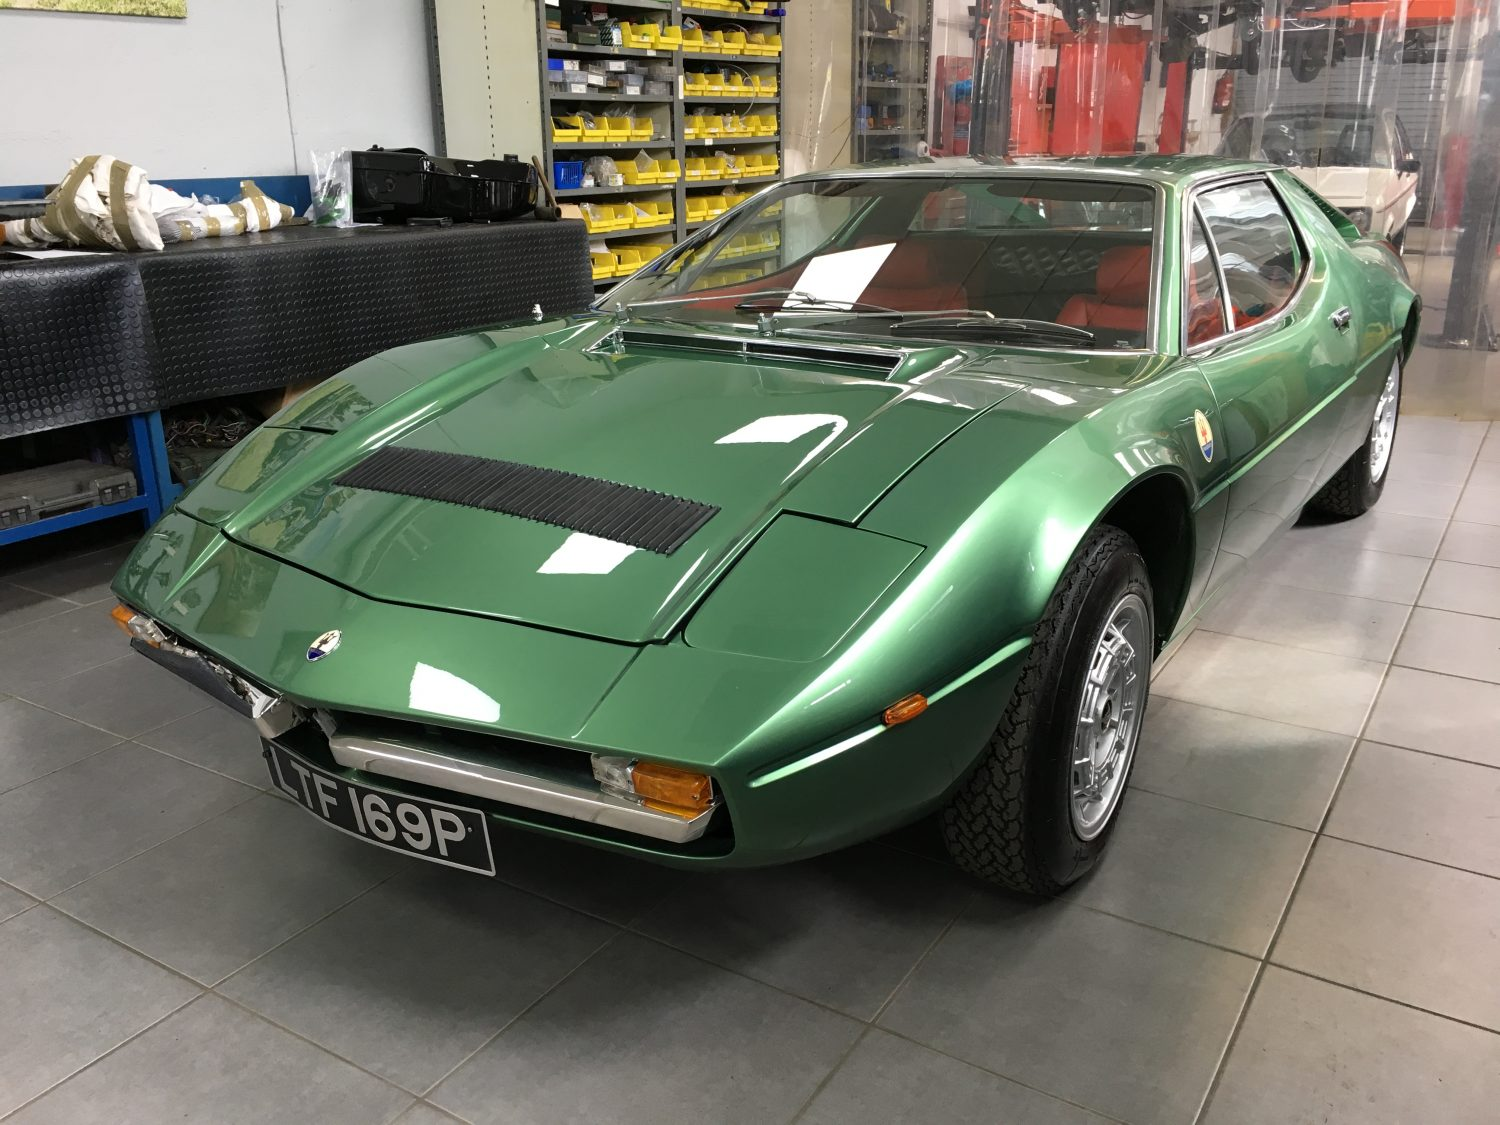 1975 maserati merak project dexy bridge classic cars. Black Bedroom Furniture Sets. Home Design Ideas